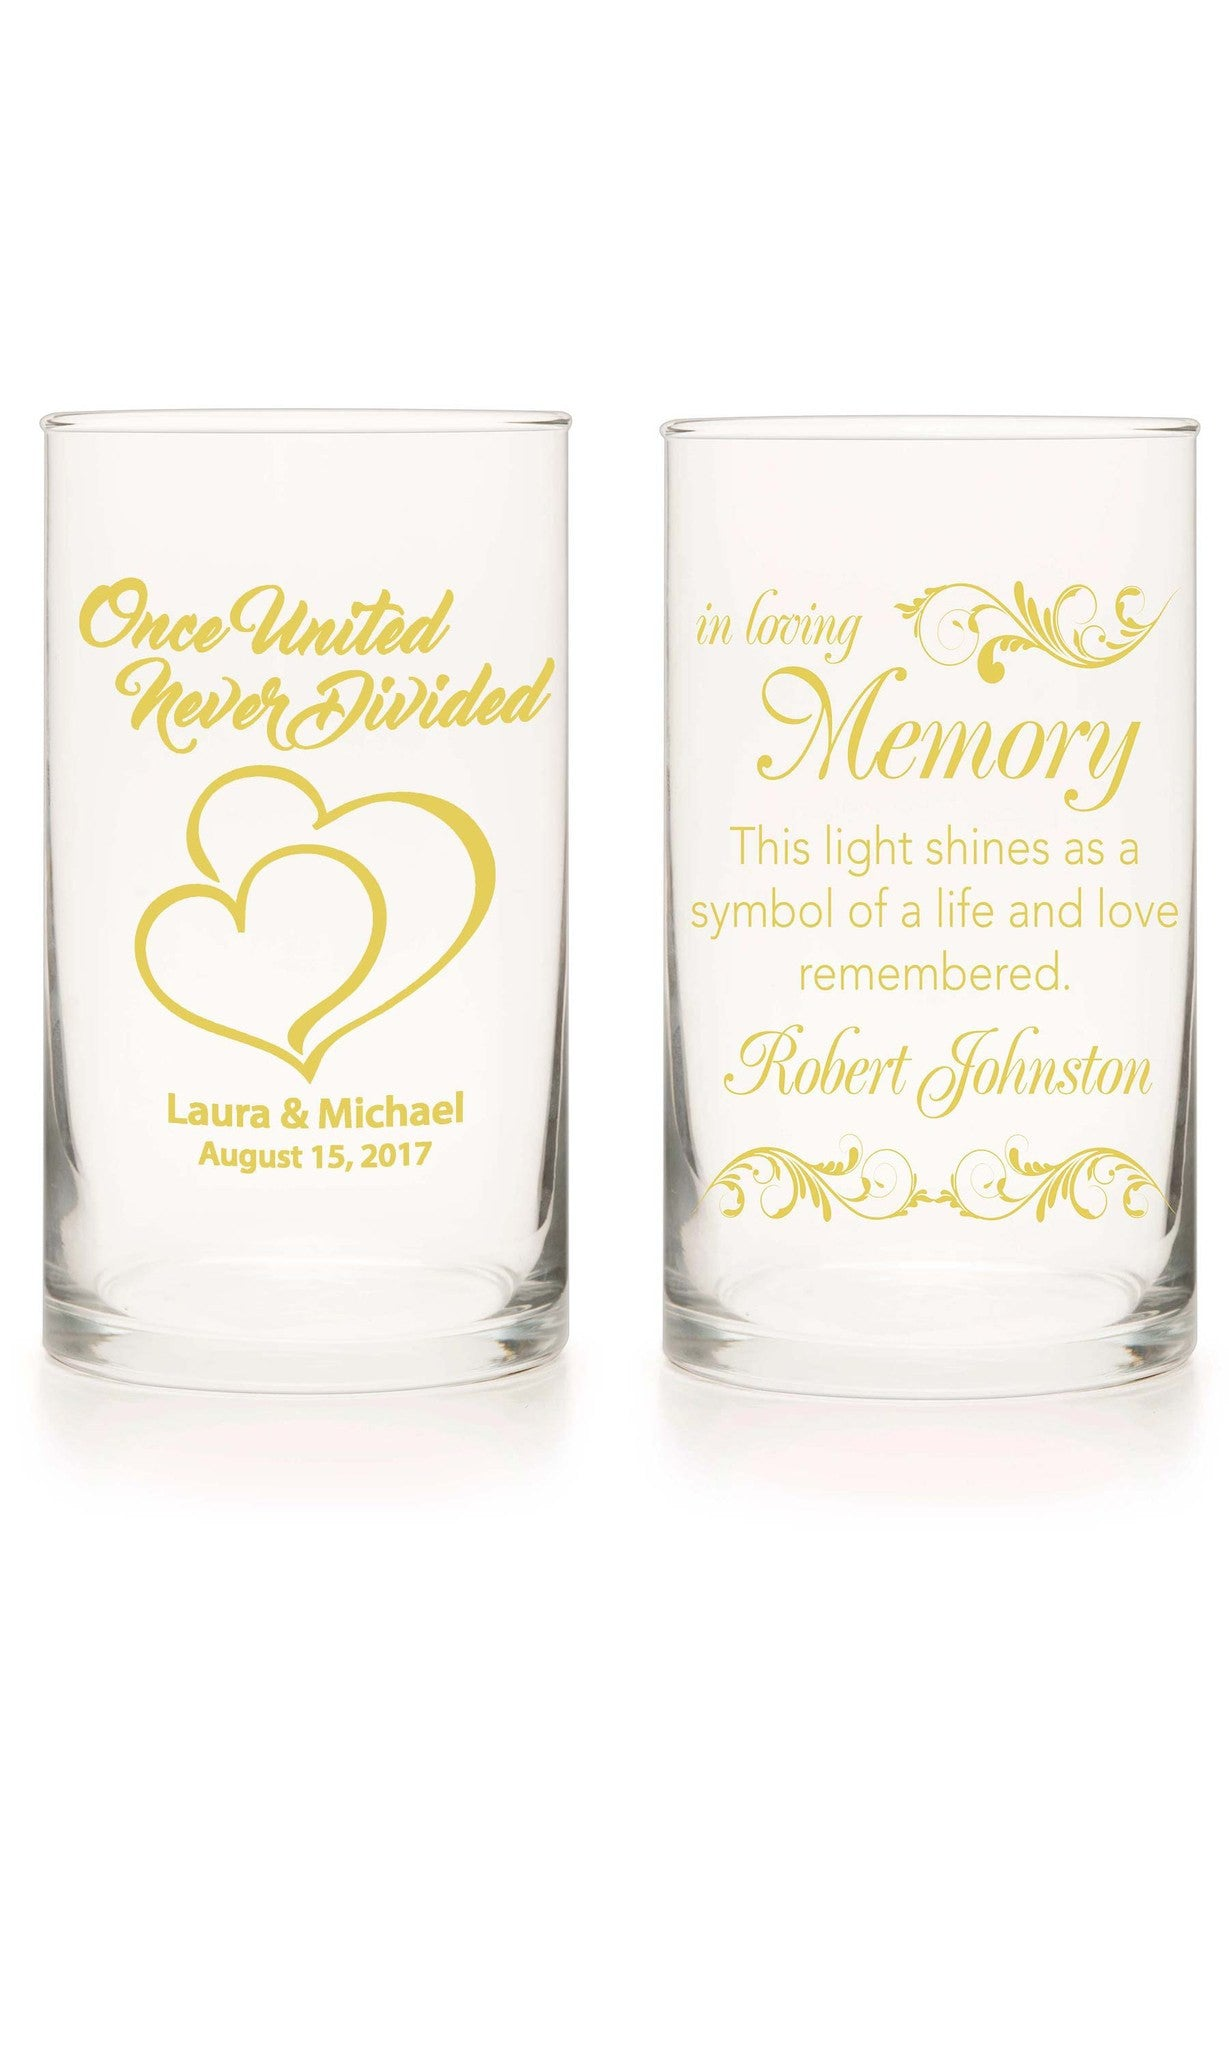 Unity Candle & Memorial Candle Set - With This Ring Yellow - Personalized Candle Holders - Wedding Candles - 12